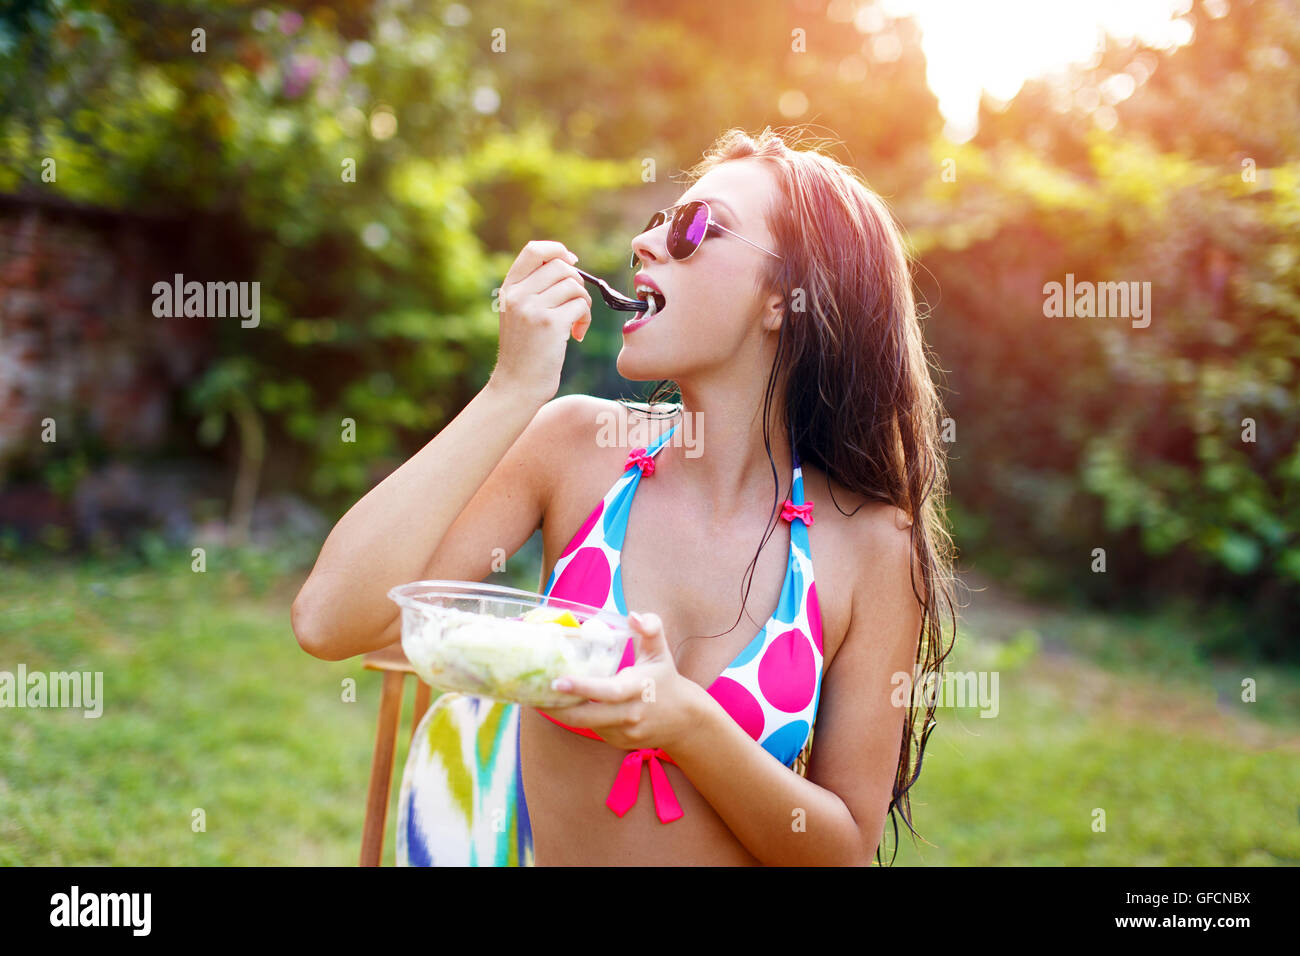 Healthy lifestyle woman in bikini eating salad outdoors in sunset. Young female eating healthy food outside in bikini - Stock Image